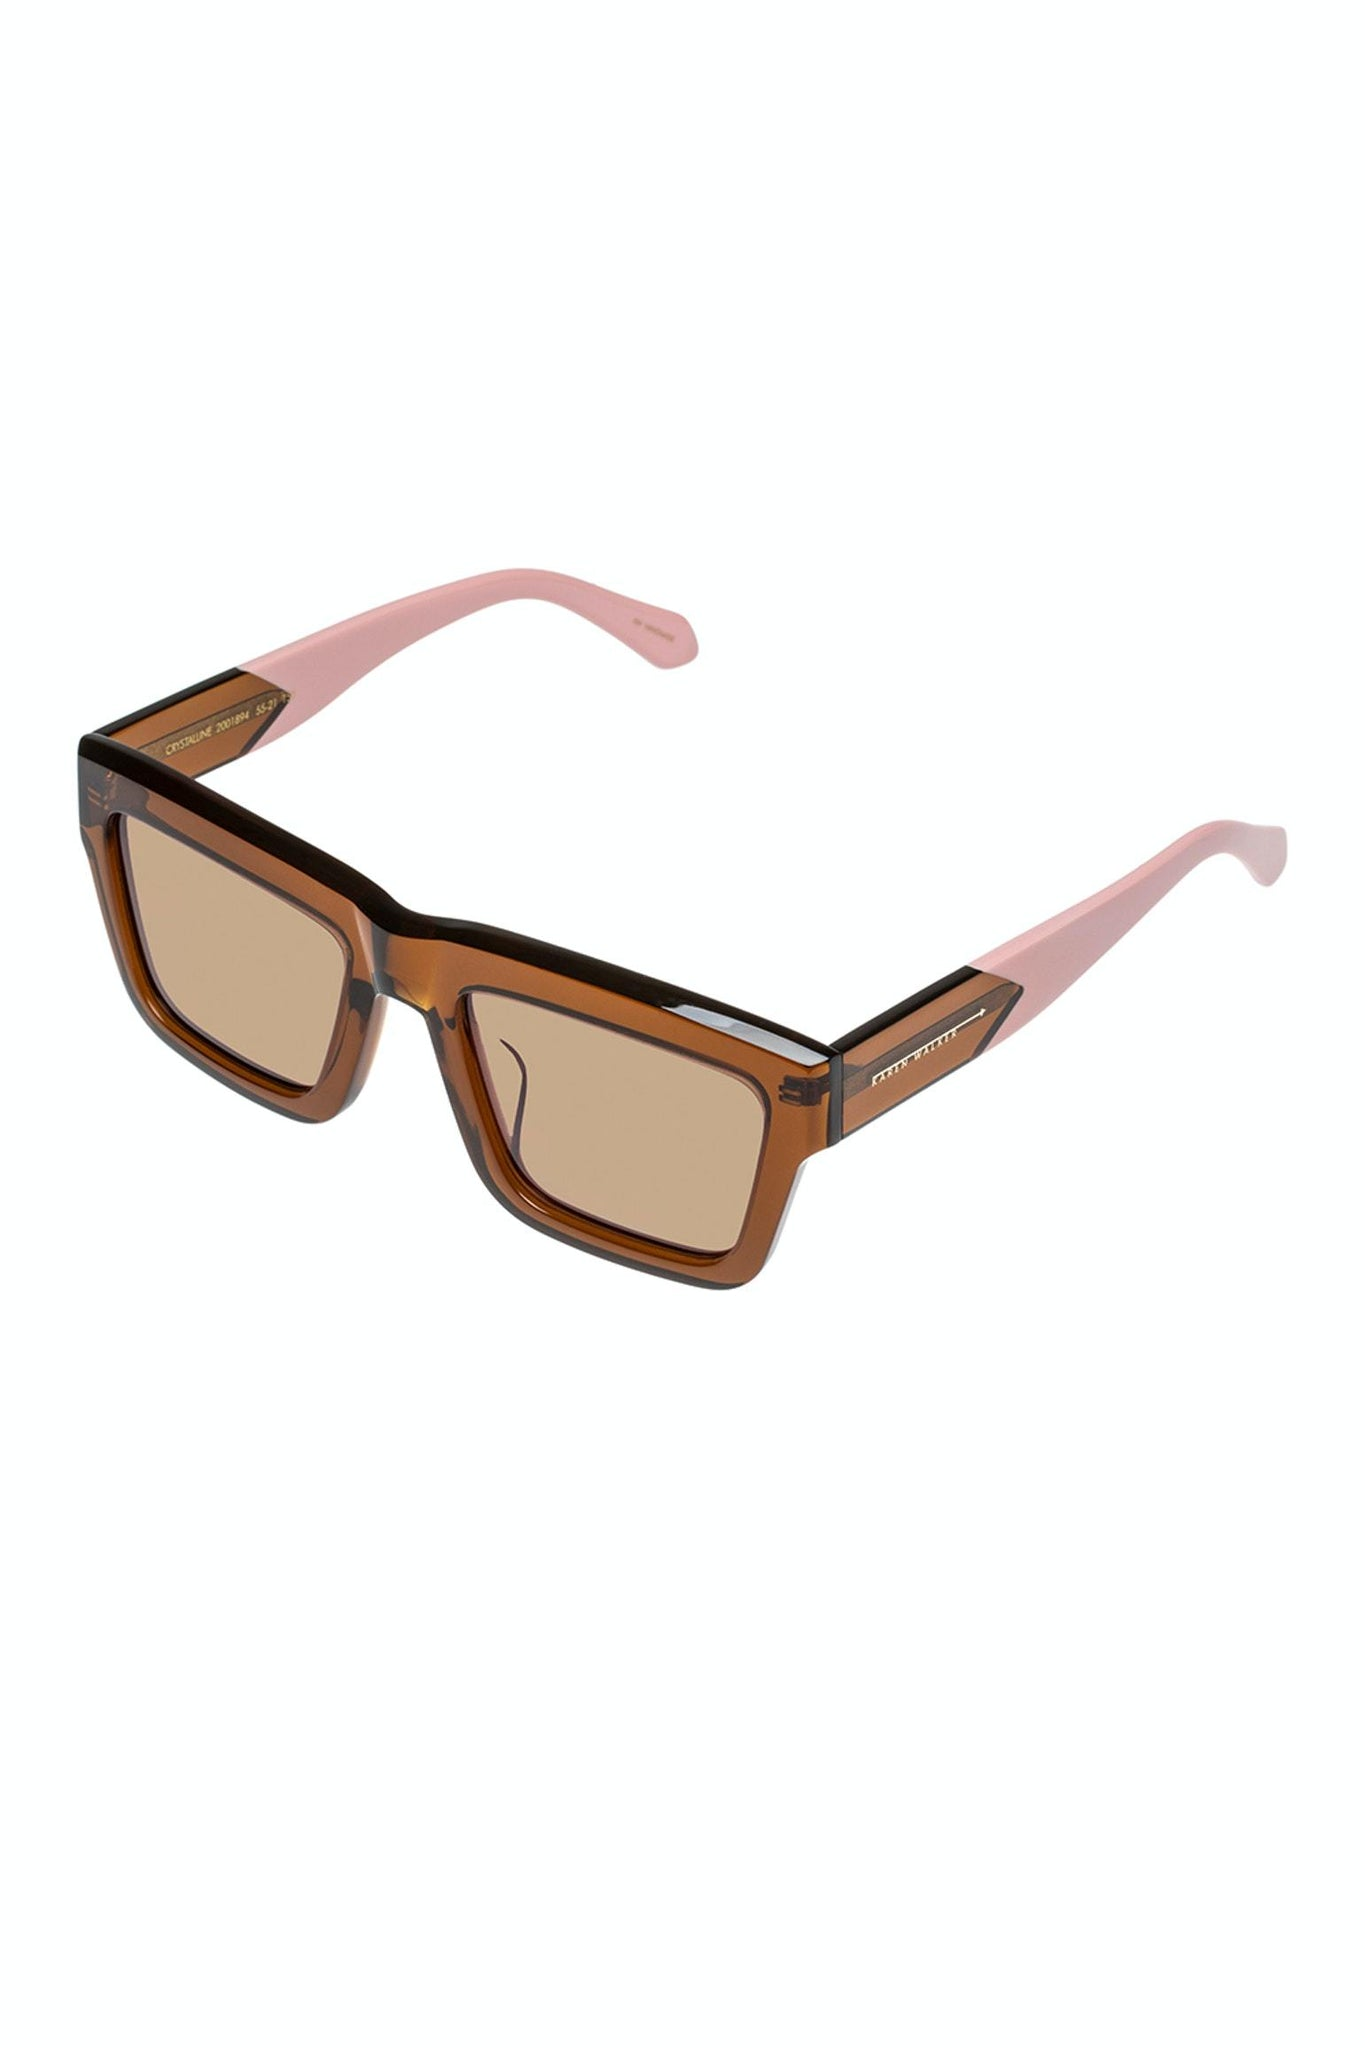 SUNSHADES EYEWEAR NZ Eyewear CINNAMON Karen Walker | Crystalline - Cinnamon